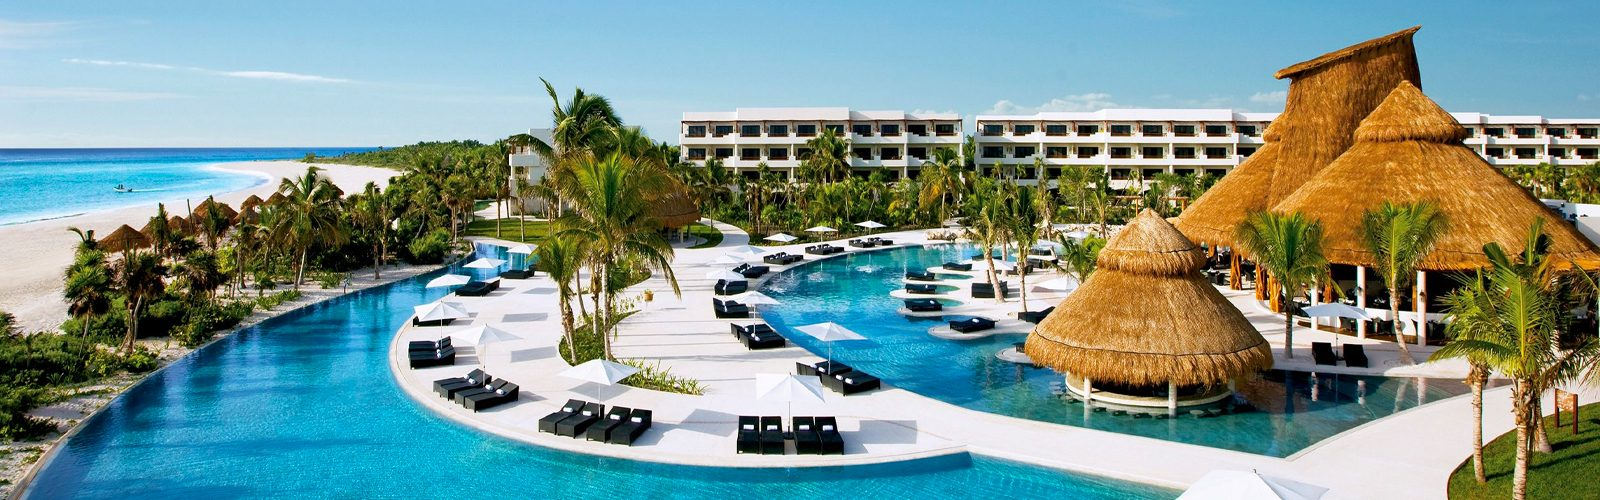 Luxury Aduly Only Holidays 5 Reasons To Stay At Secrets Resorts Header